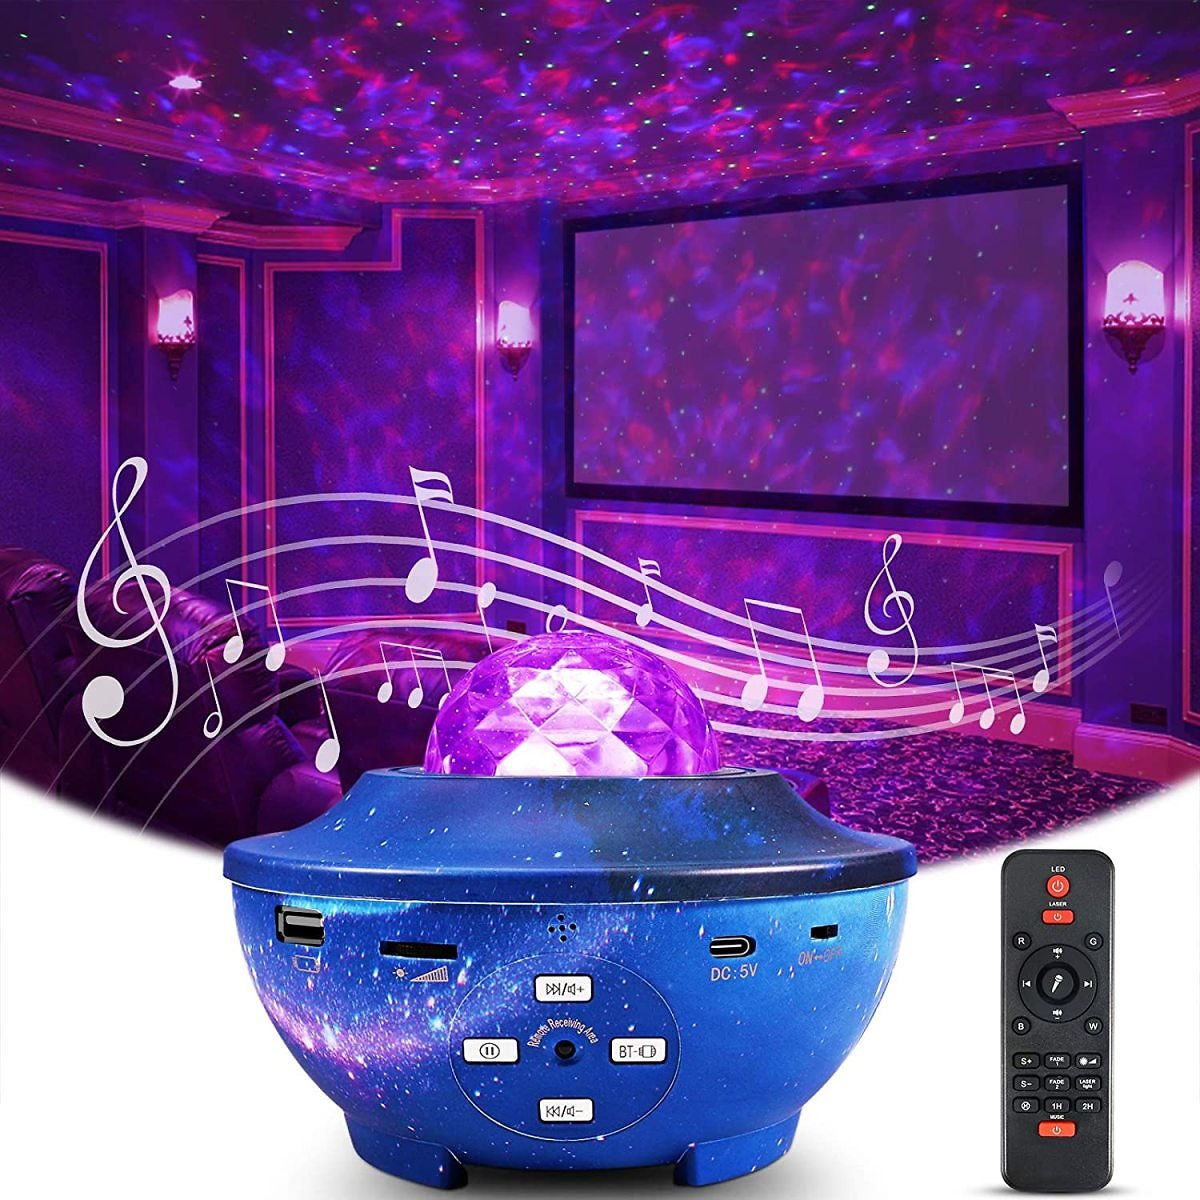 Star Projector Night Light, Delicacy Galaxy Projector Ocean Wave Starry Sky Projector with Bluetooth Speaker,Rotating LED Nebula